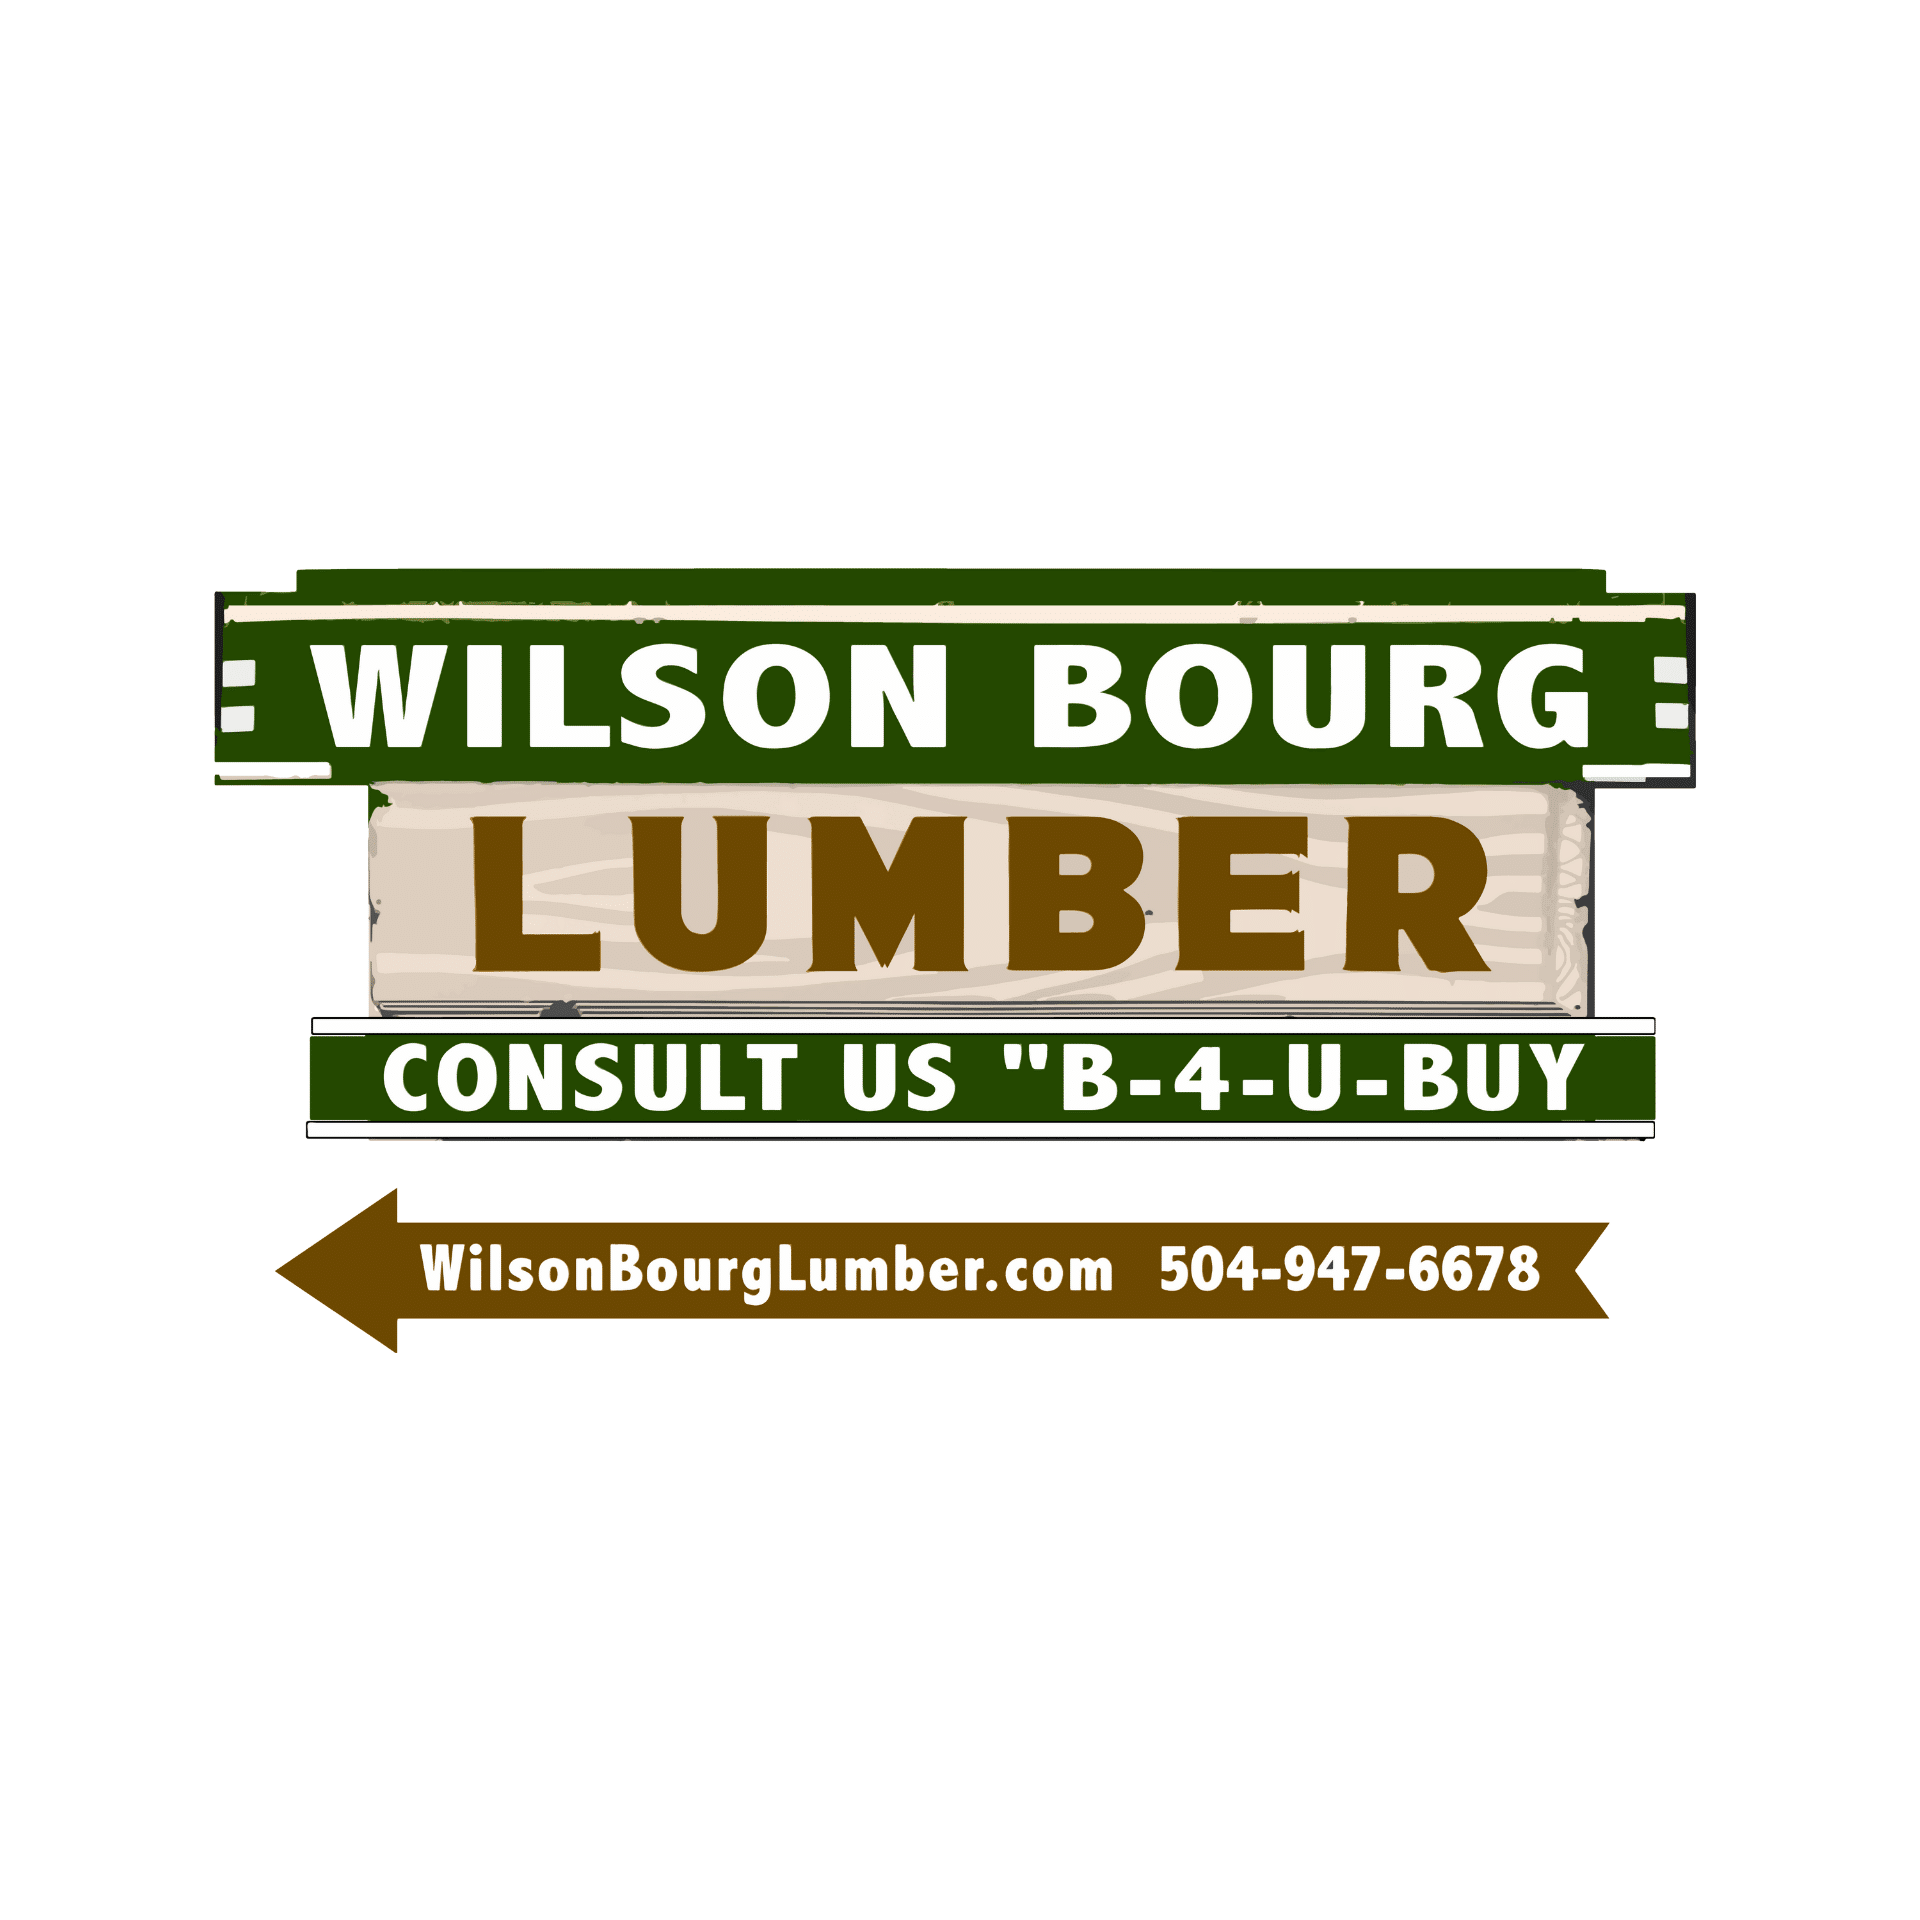 Web Design for Wilson Bourg